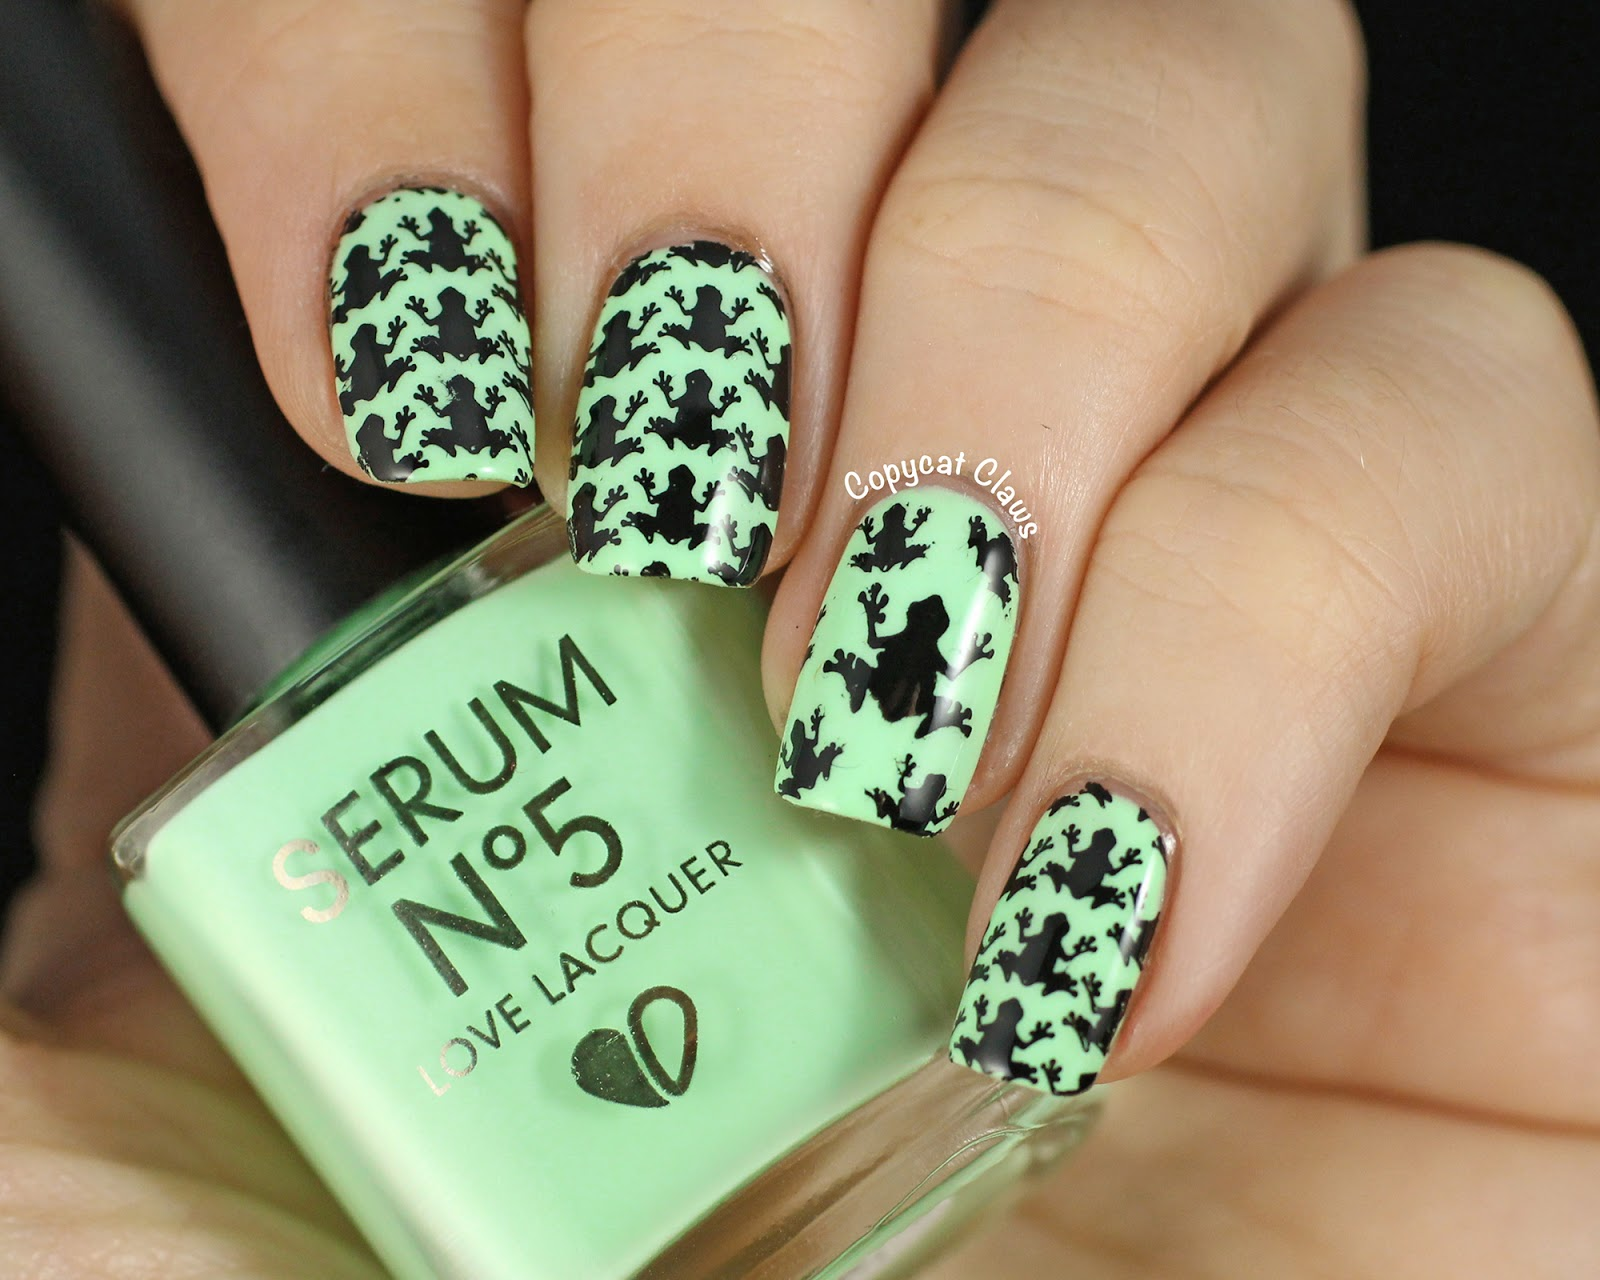 Copycat Claws: Some Serum No. 5 SS14 Glow In The Dark Polishes